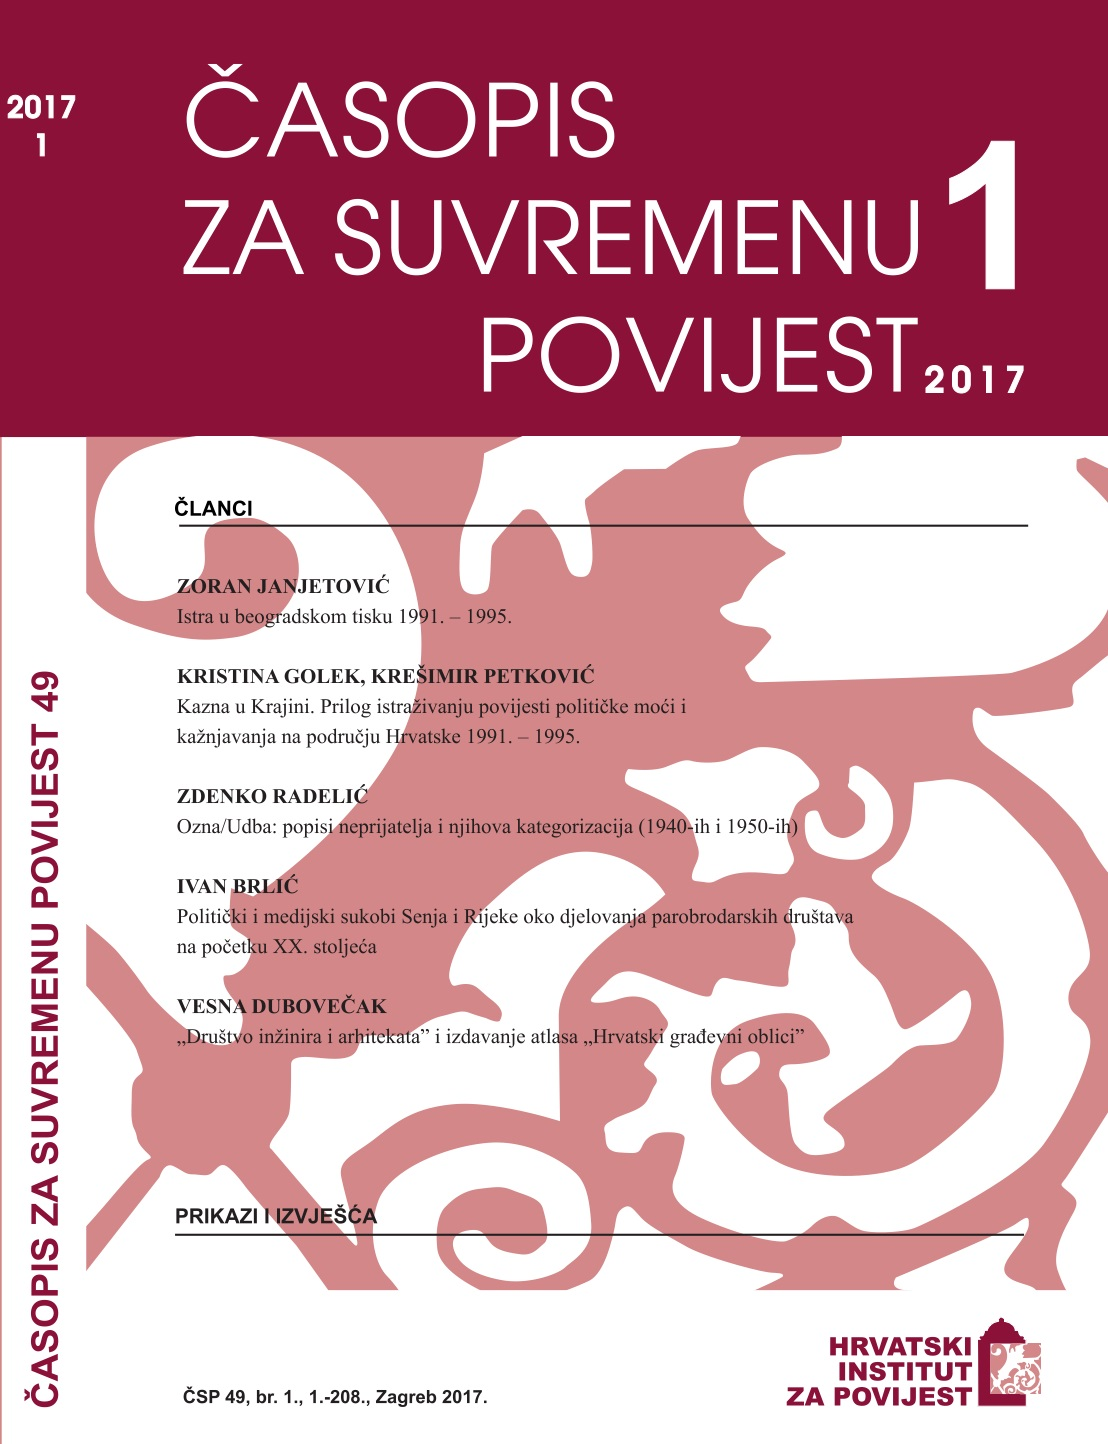 The Society of Engineers and Architects and the Publishing of the Atlas 'Croatian Construction Forms' Cover Image